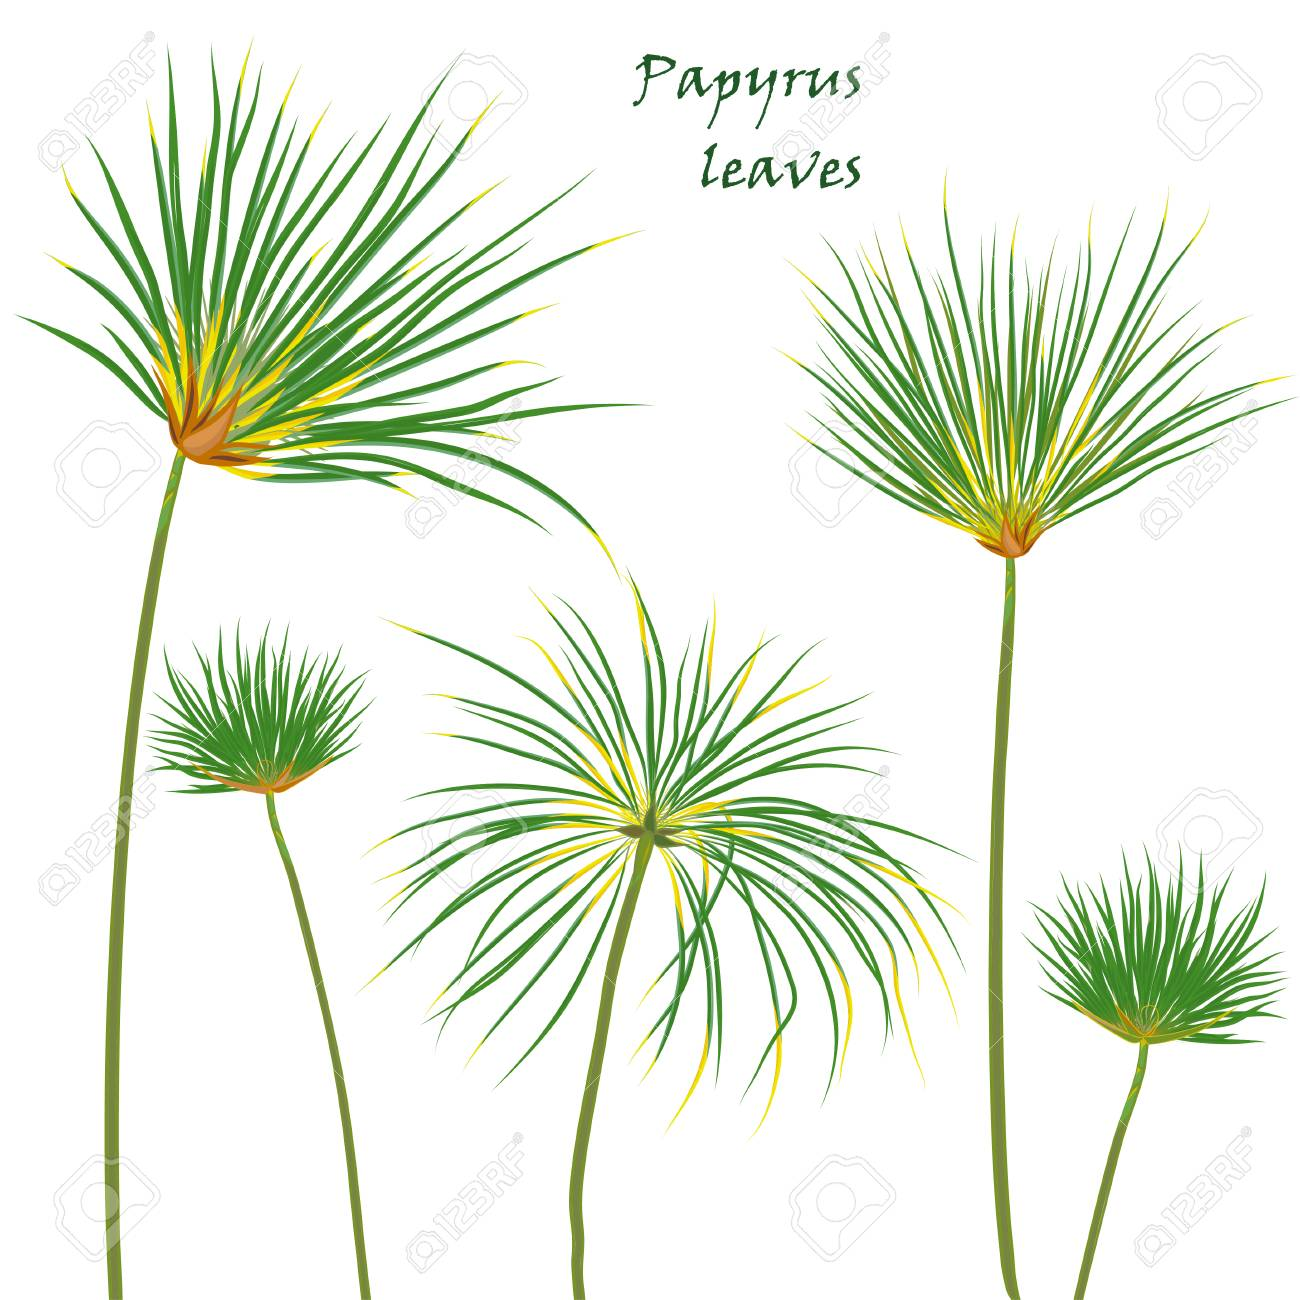 Set Tropical Palm Papyrus Leaves Realistic Drawing In Flat Color